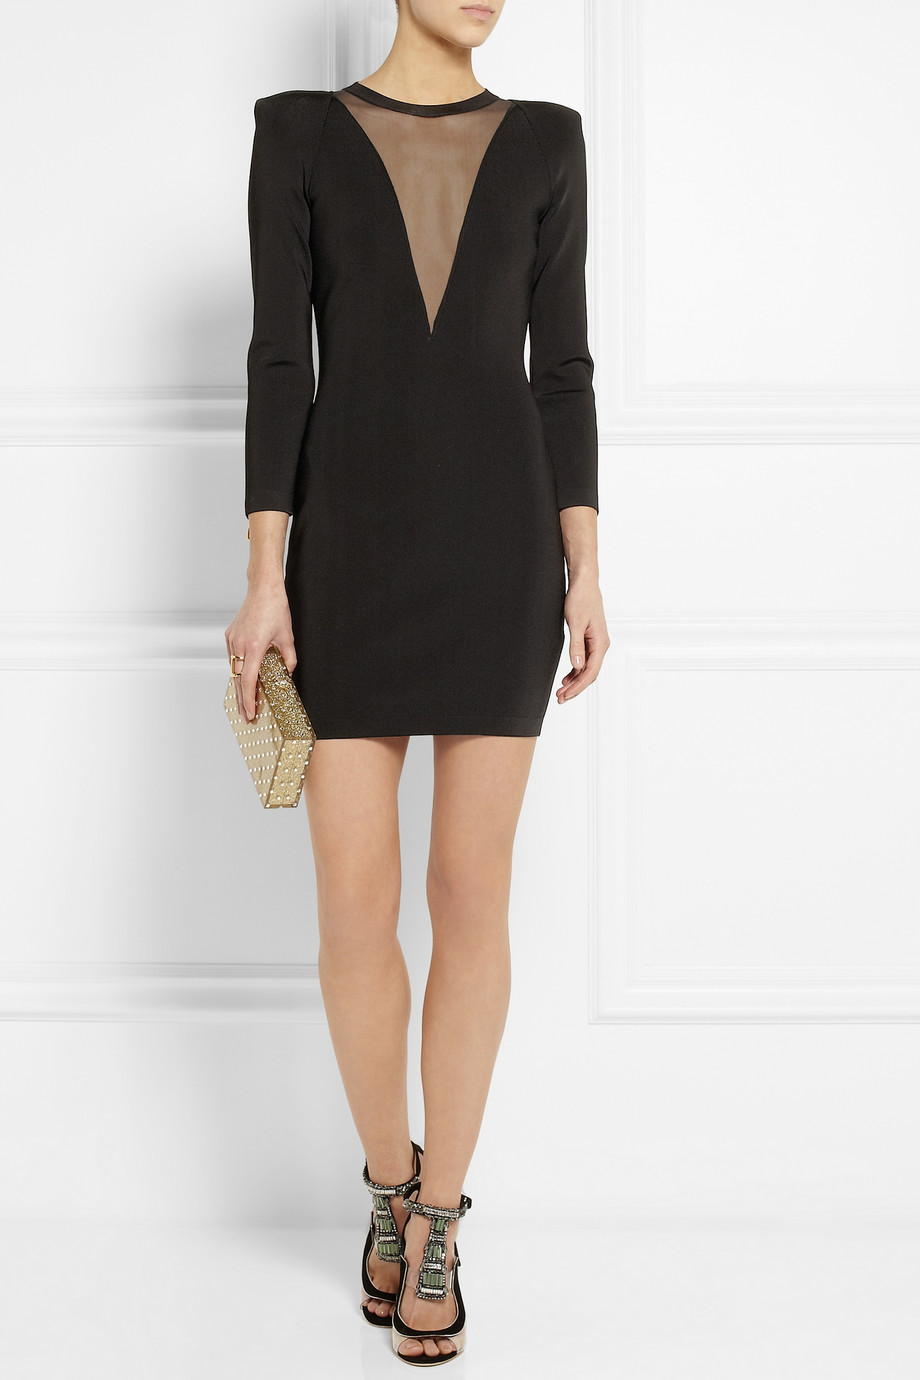 BALMAIN  Stretch Knit And Gauze Mini Dress buy HERE